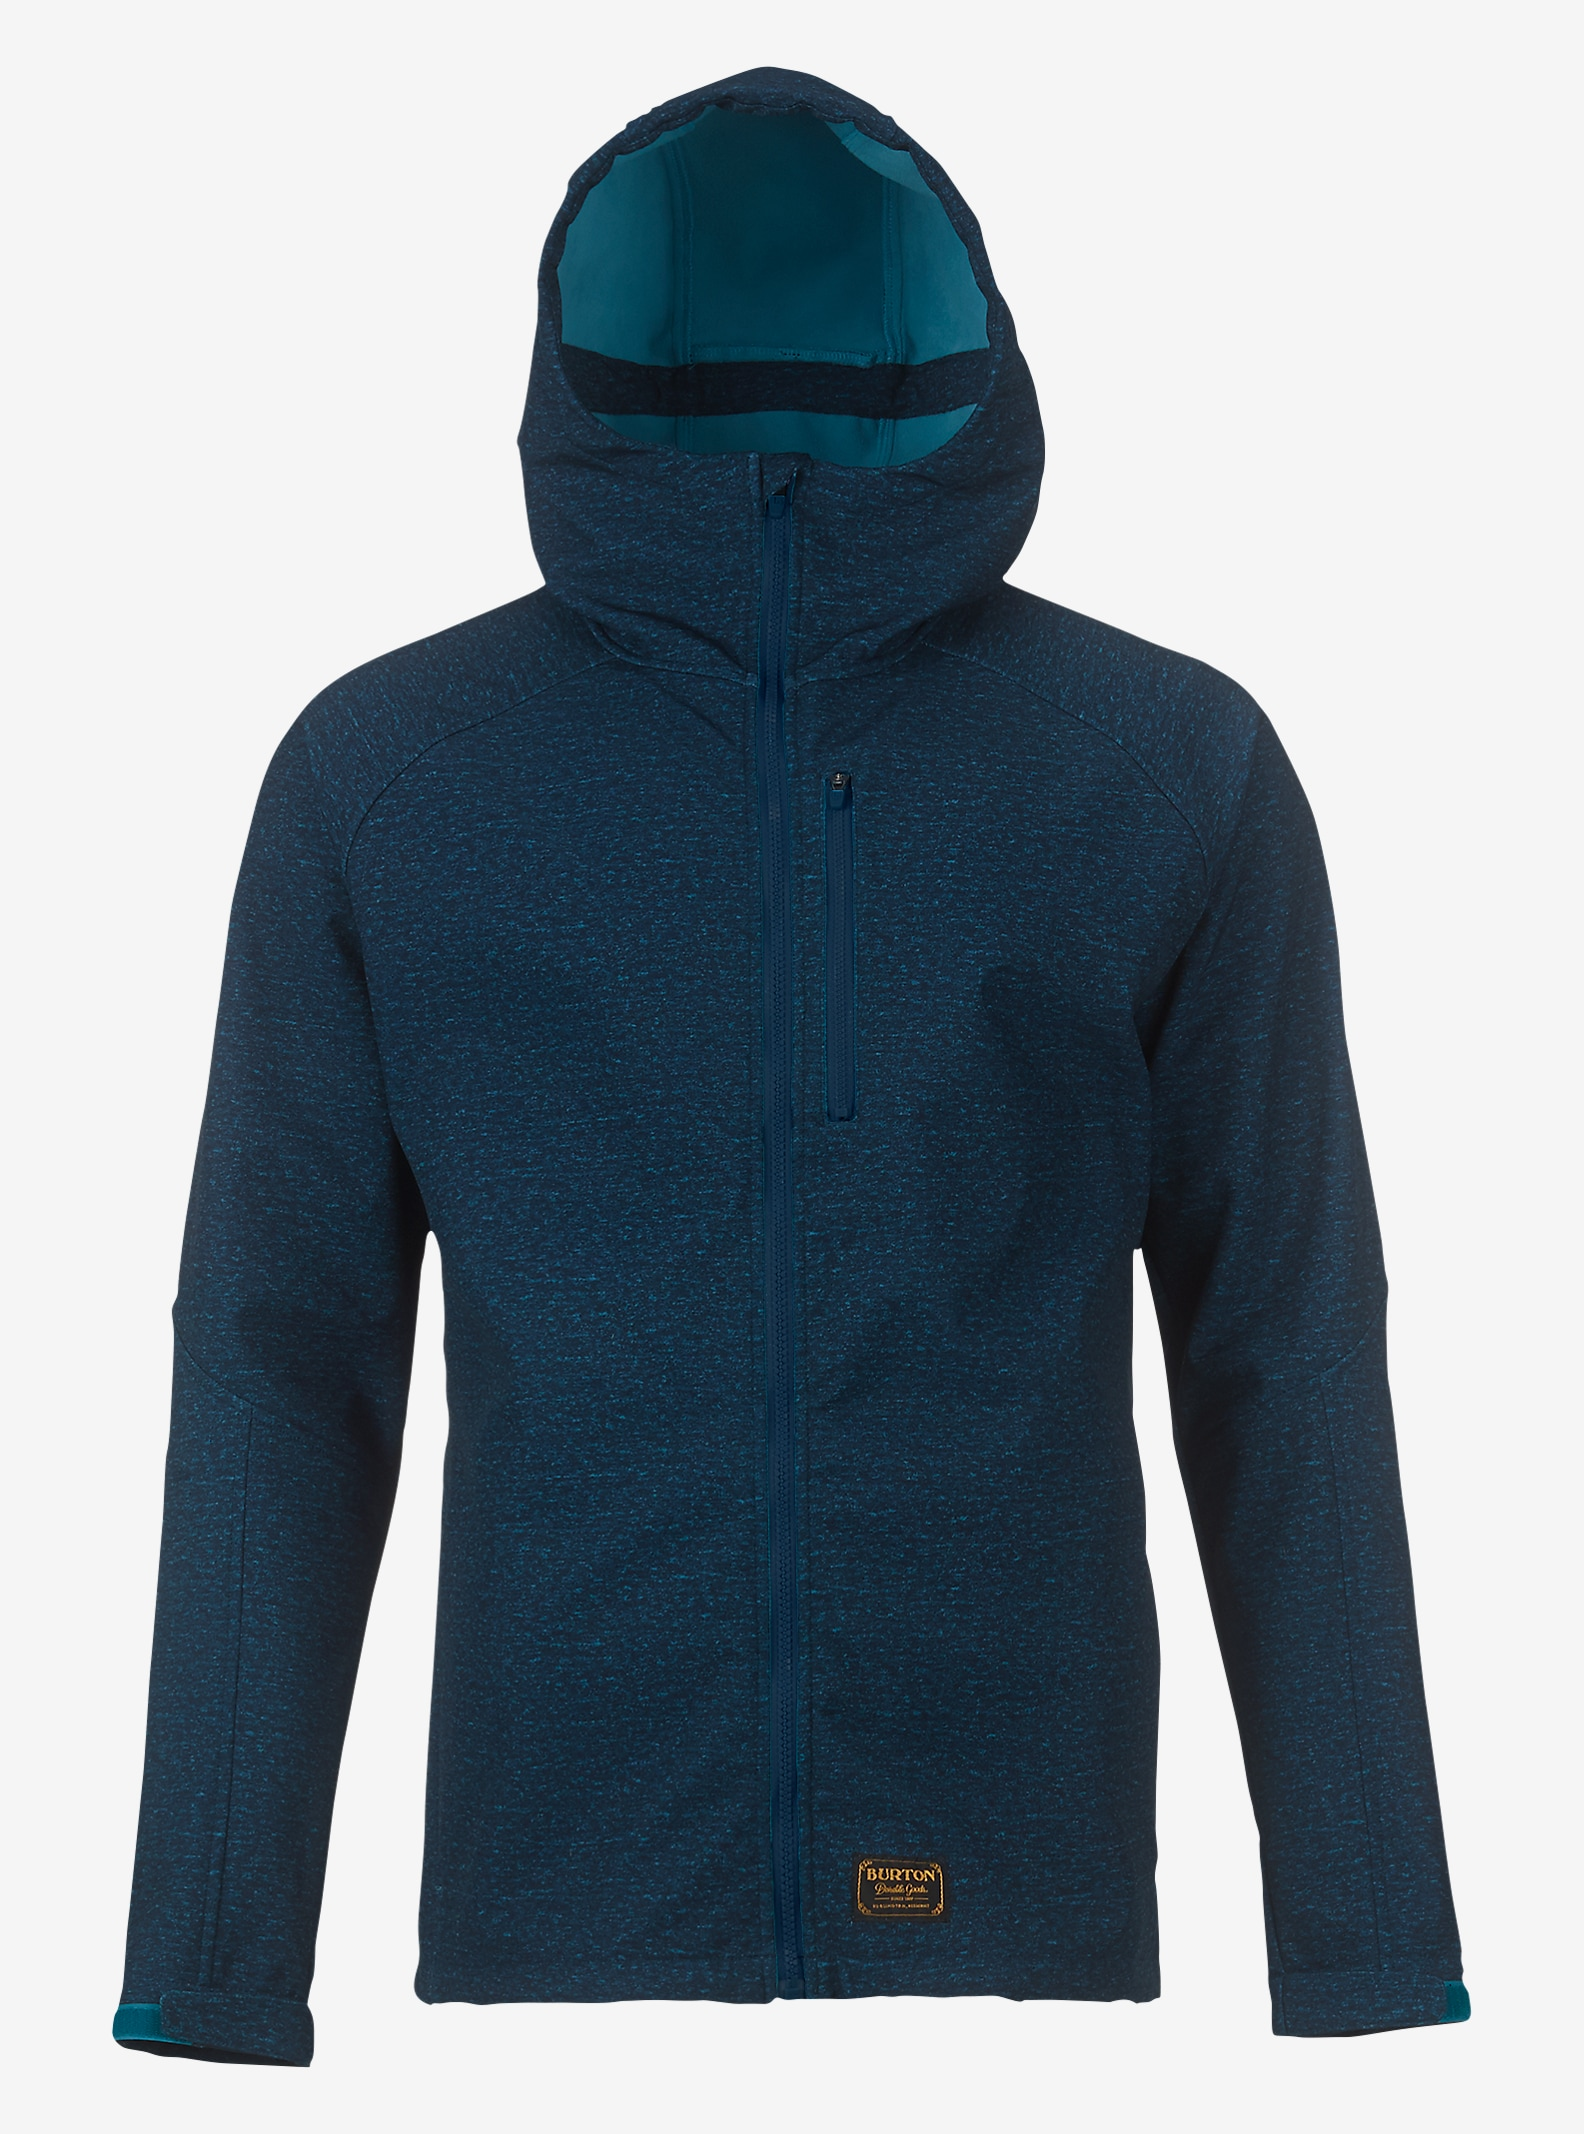 Burton Process Softshell shown in Blue Mirage Heather